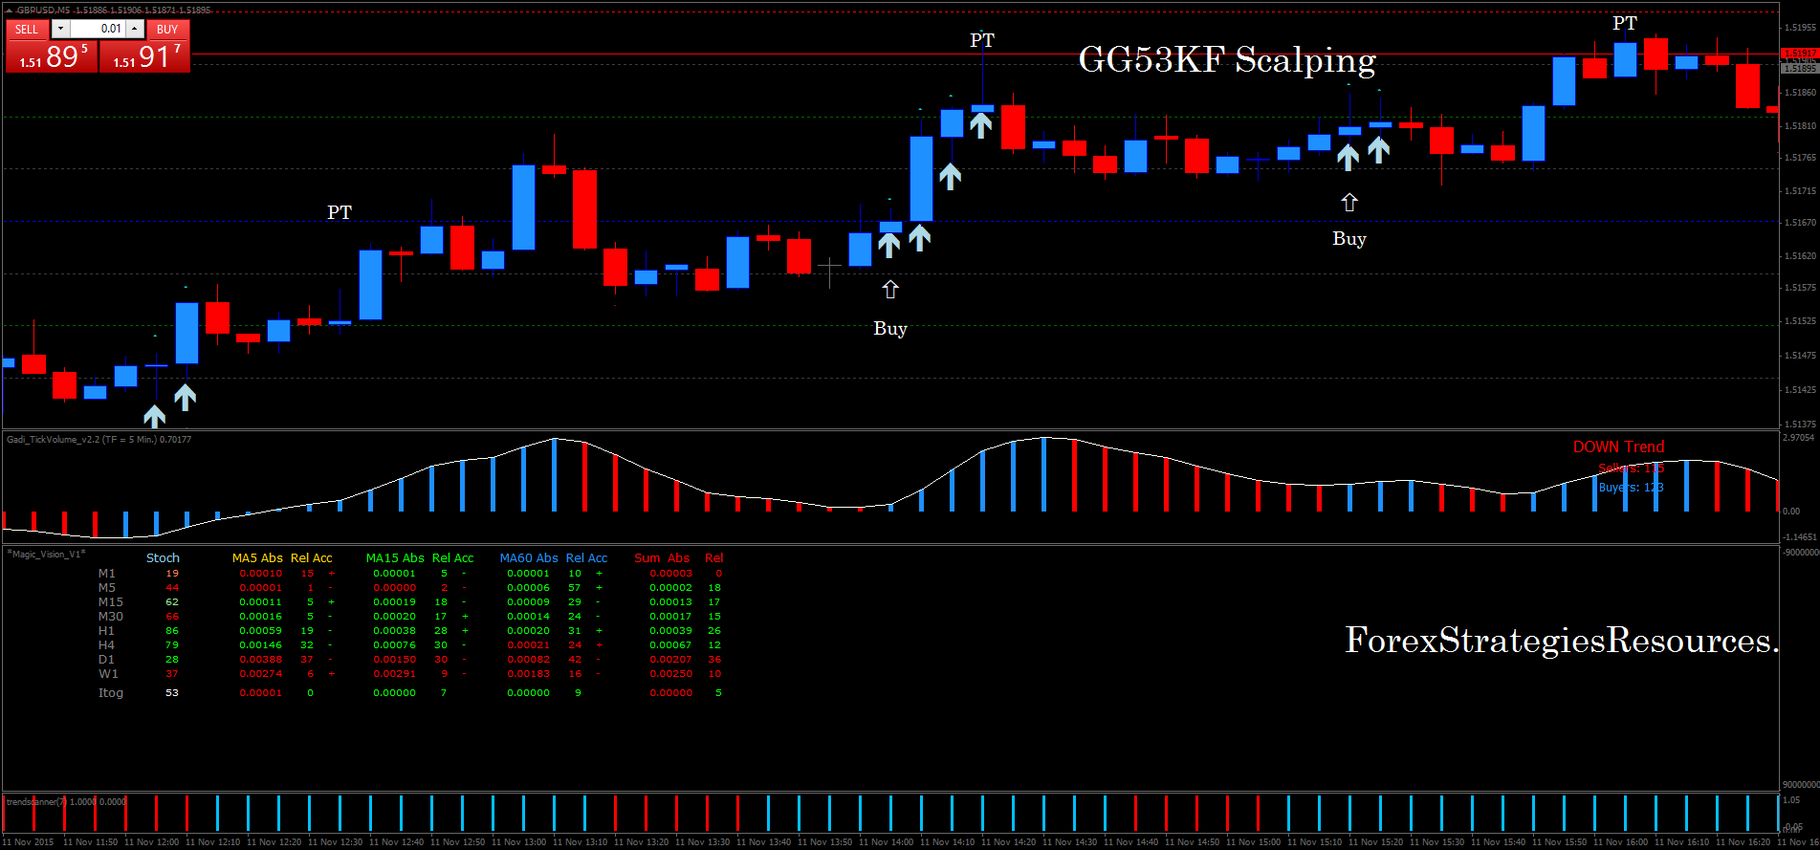 Gg53kf Scalping Forex Strategies Forex Resources